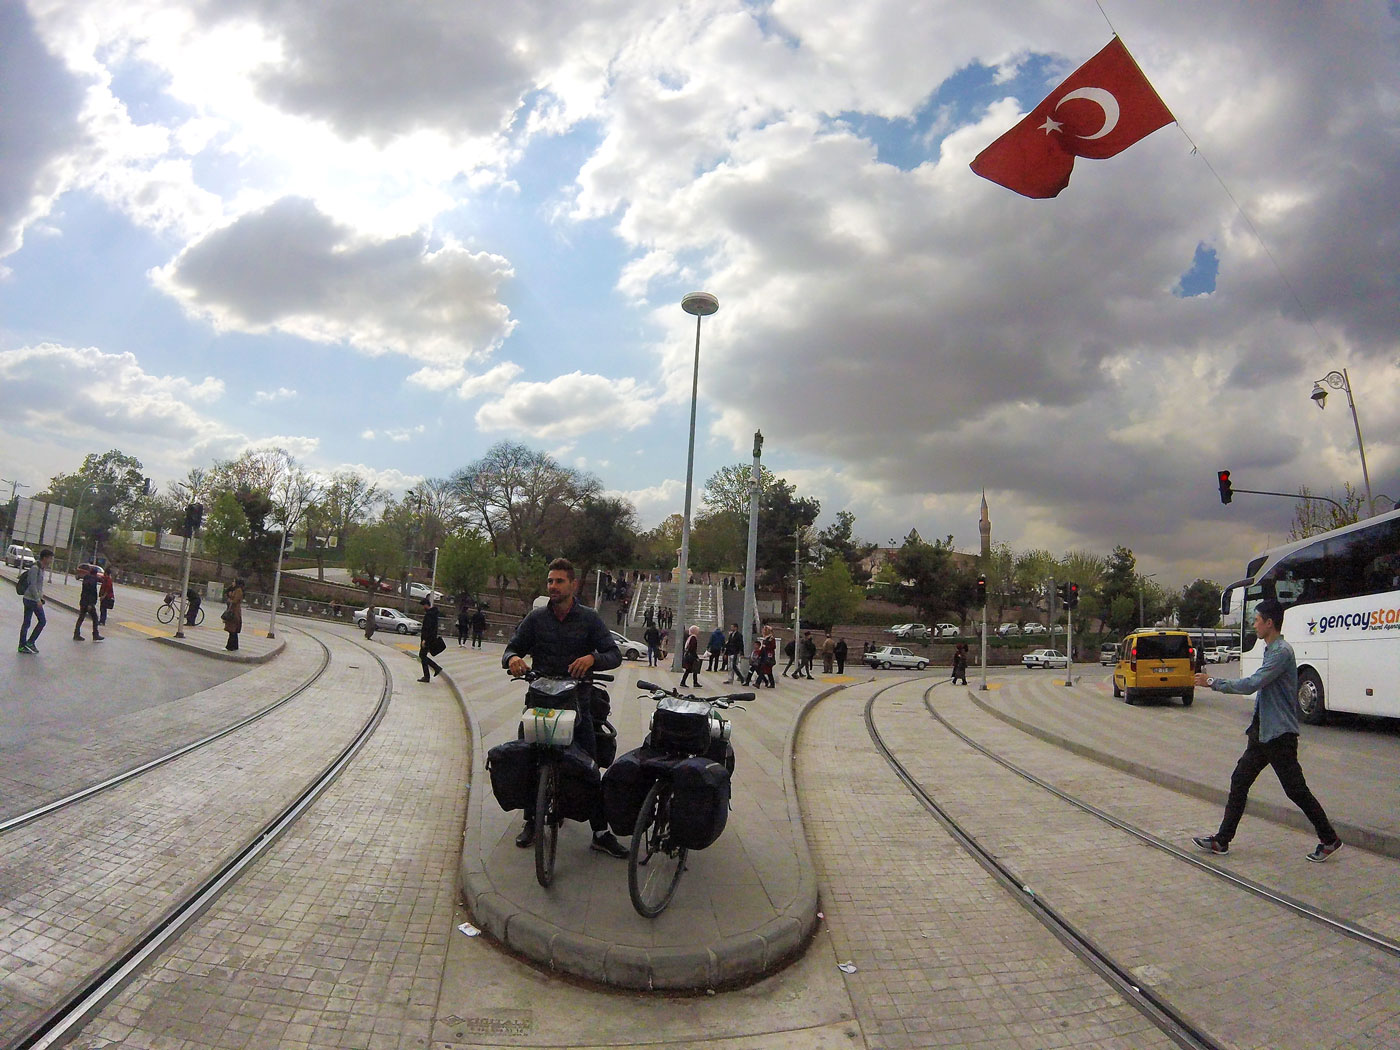 La Turquie à vélo, Konya centre-ville. Cycling Turquey, Konya city center.